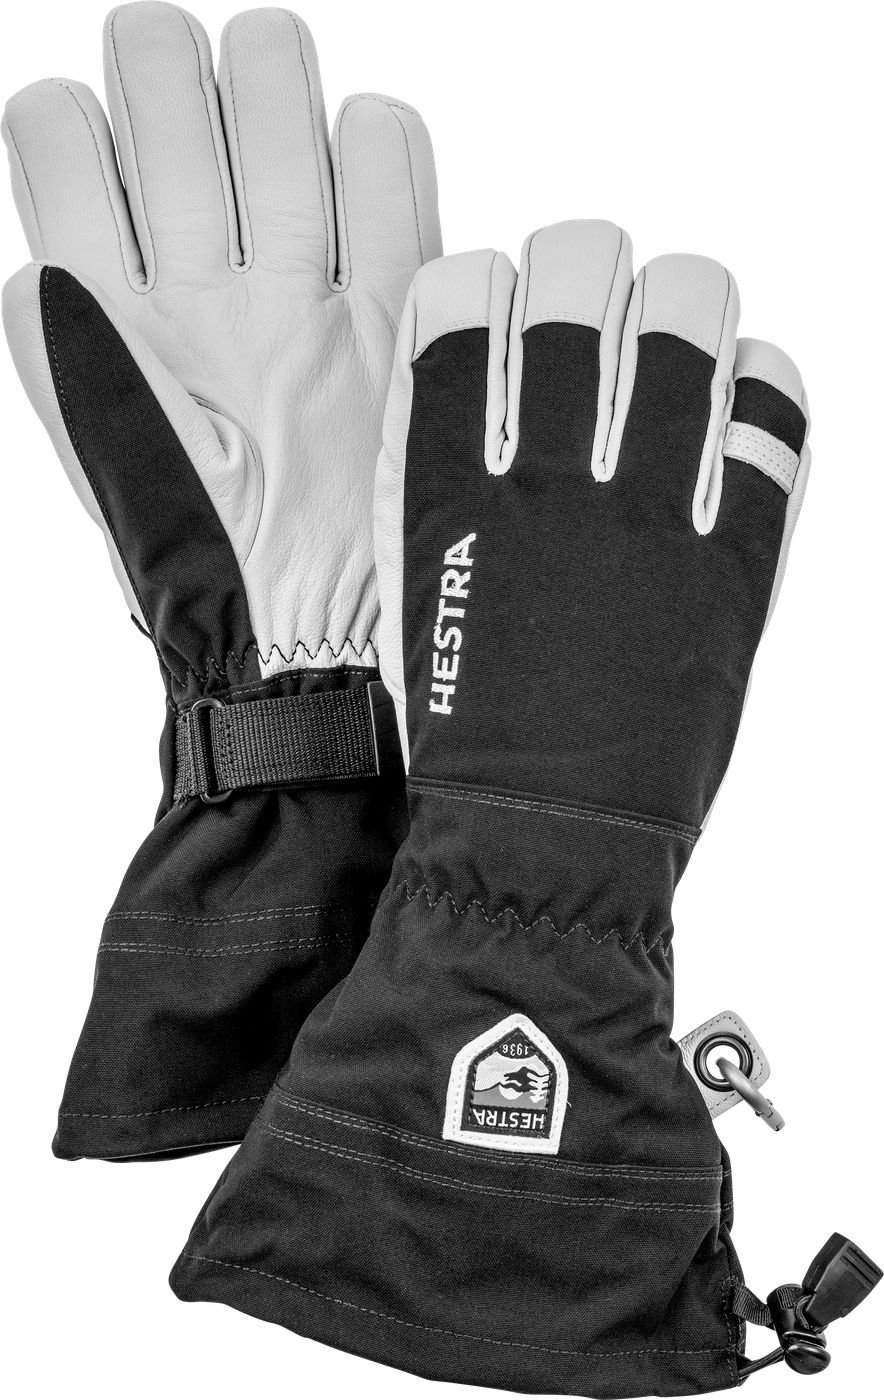 Hestra Ski Gloves: Army Leather Heli Leather Cold Weather Powder Gloves, Black, 8